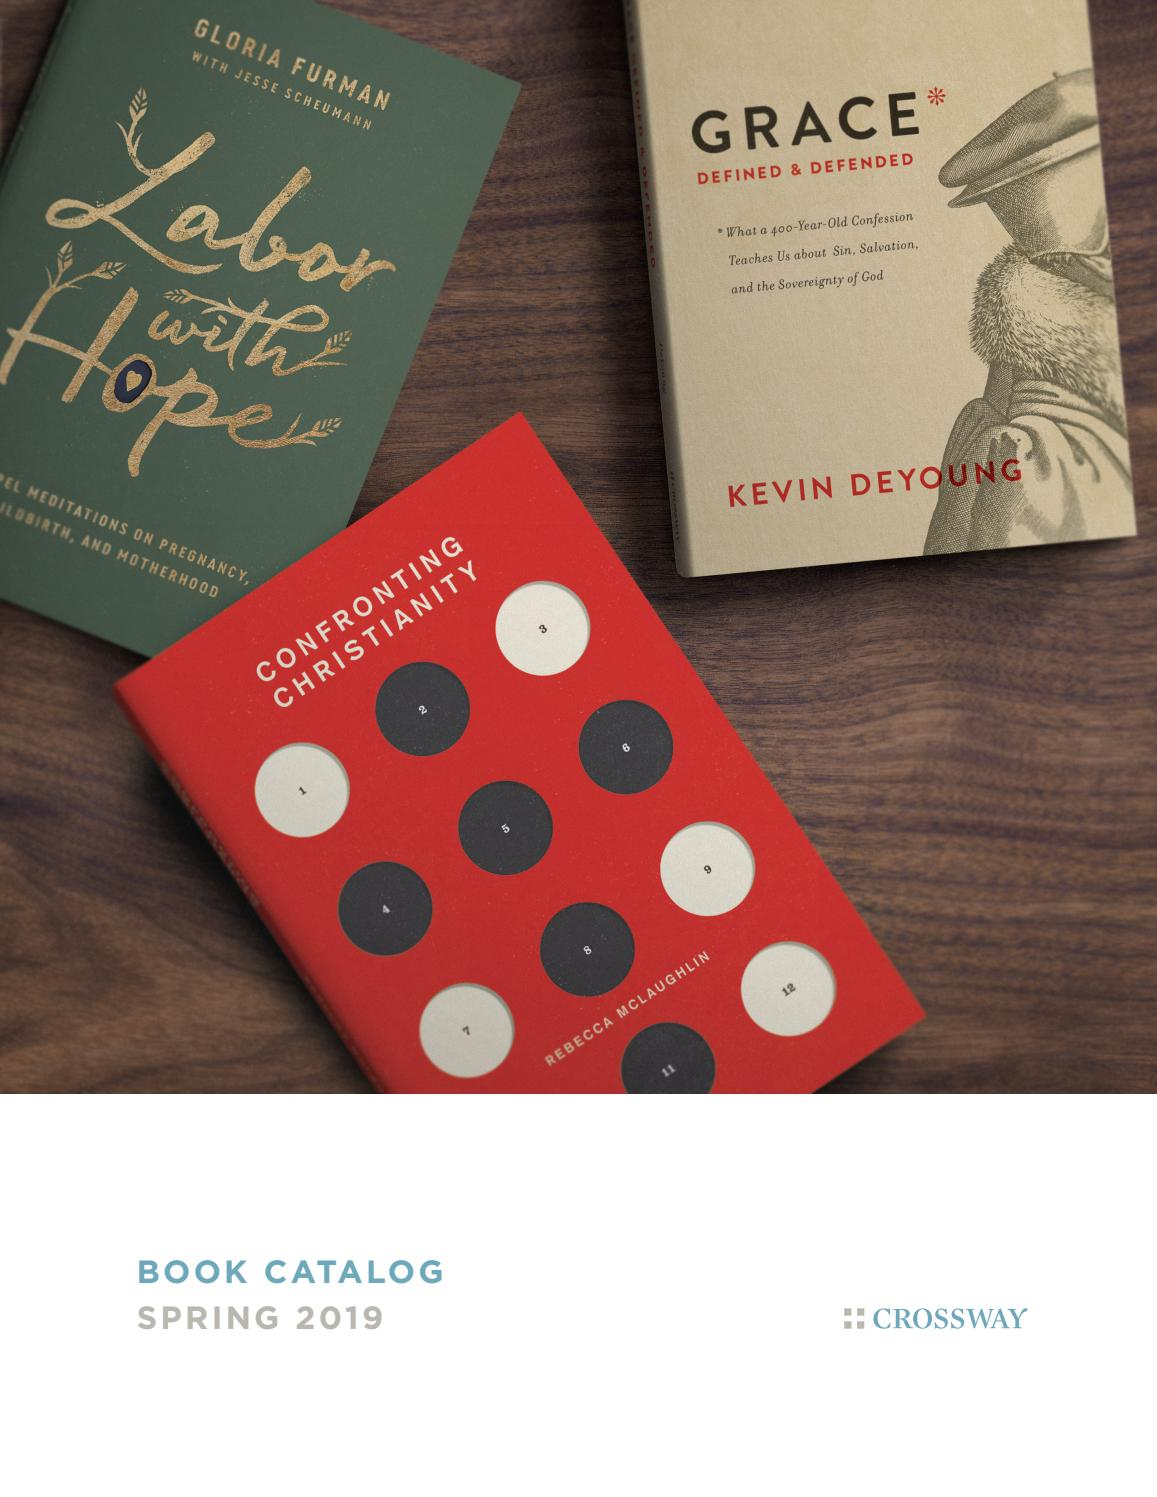 Book Catalog Spring 2019 by Crossway issuu